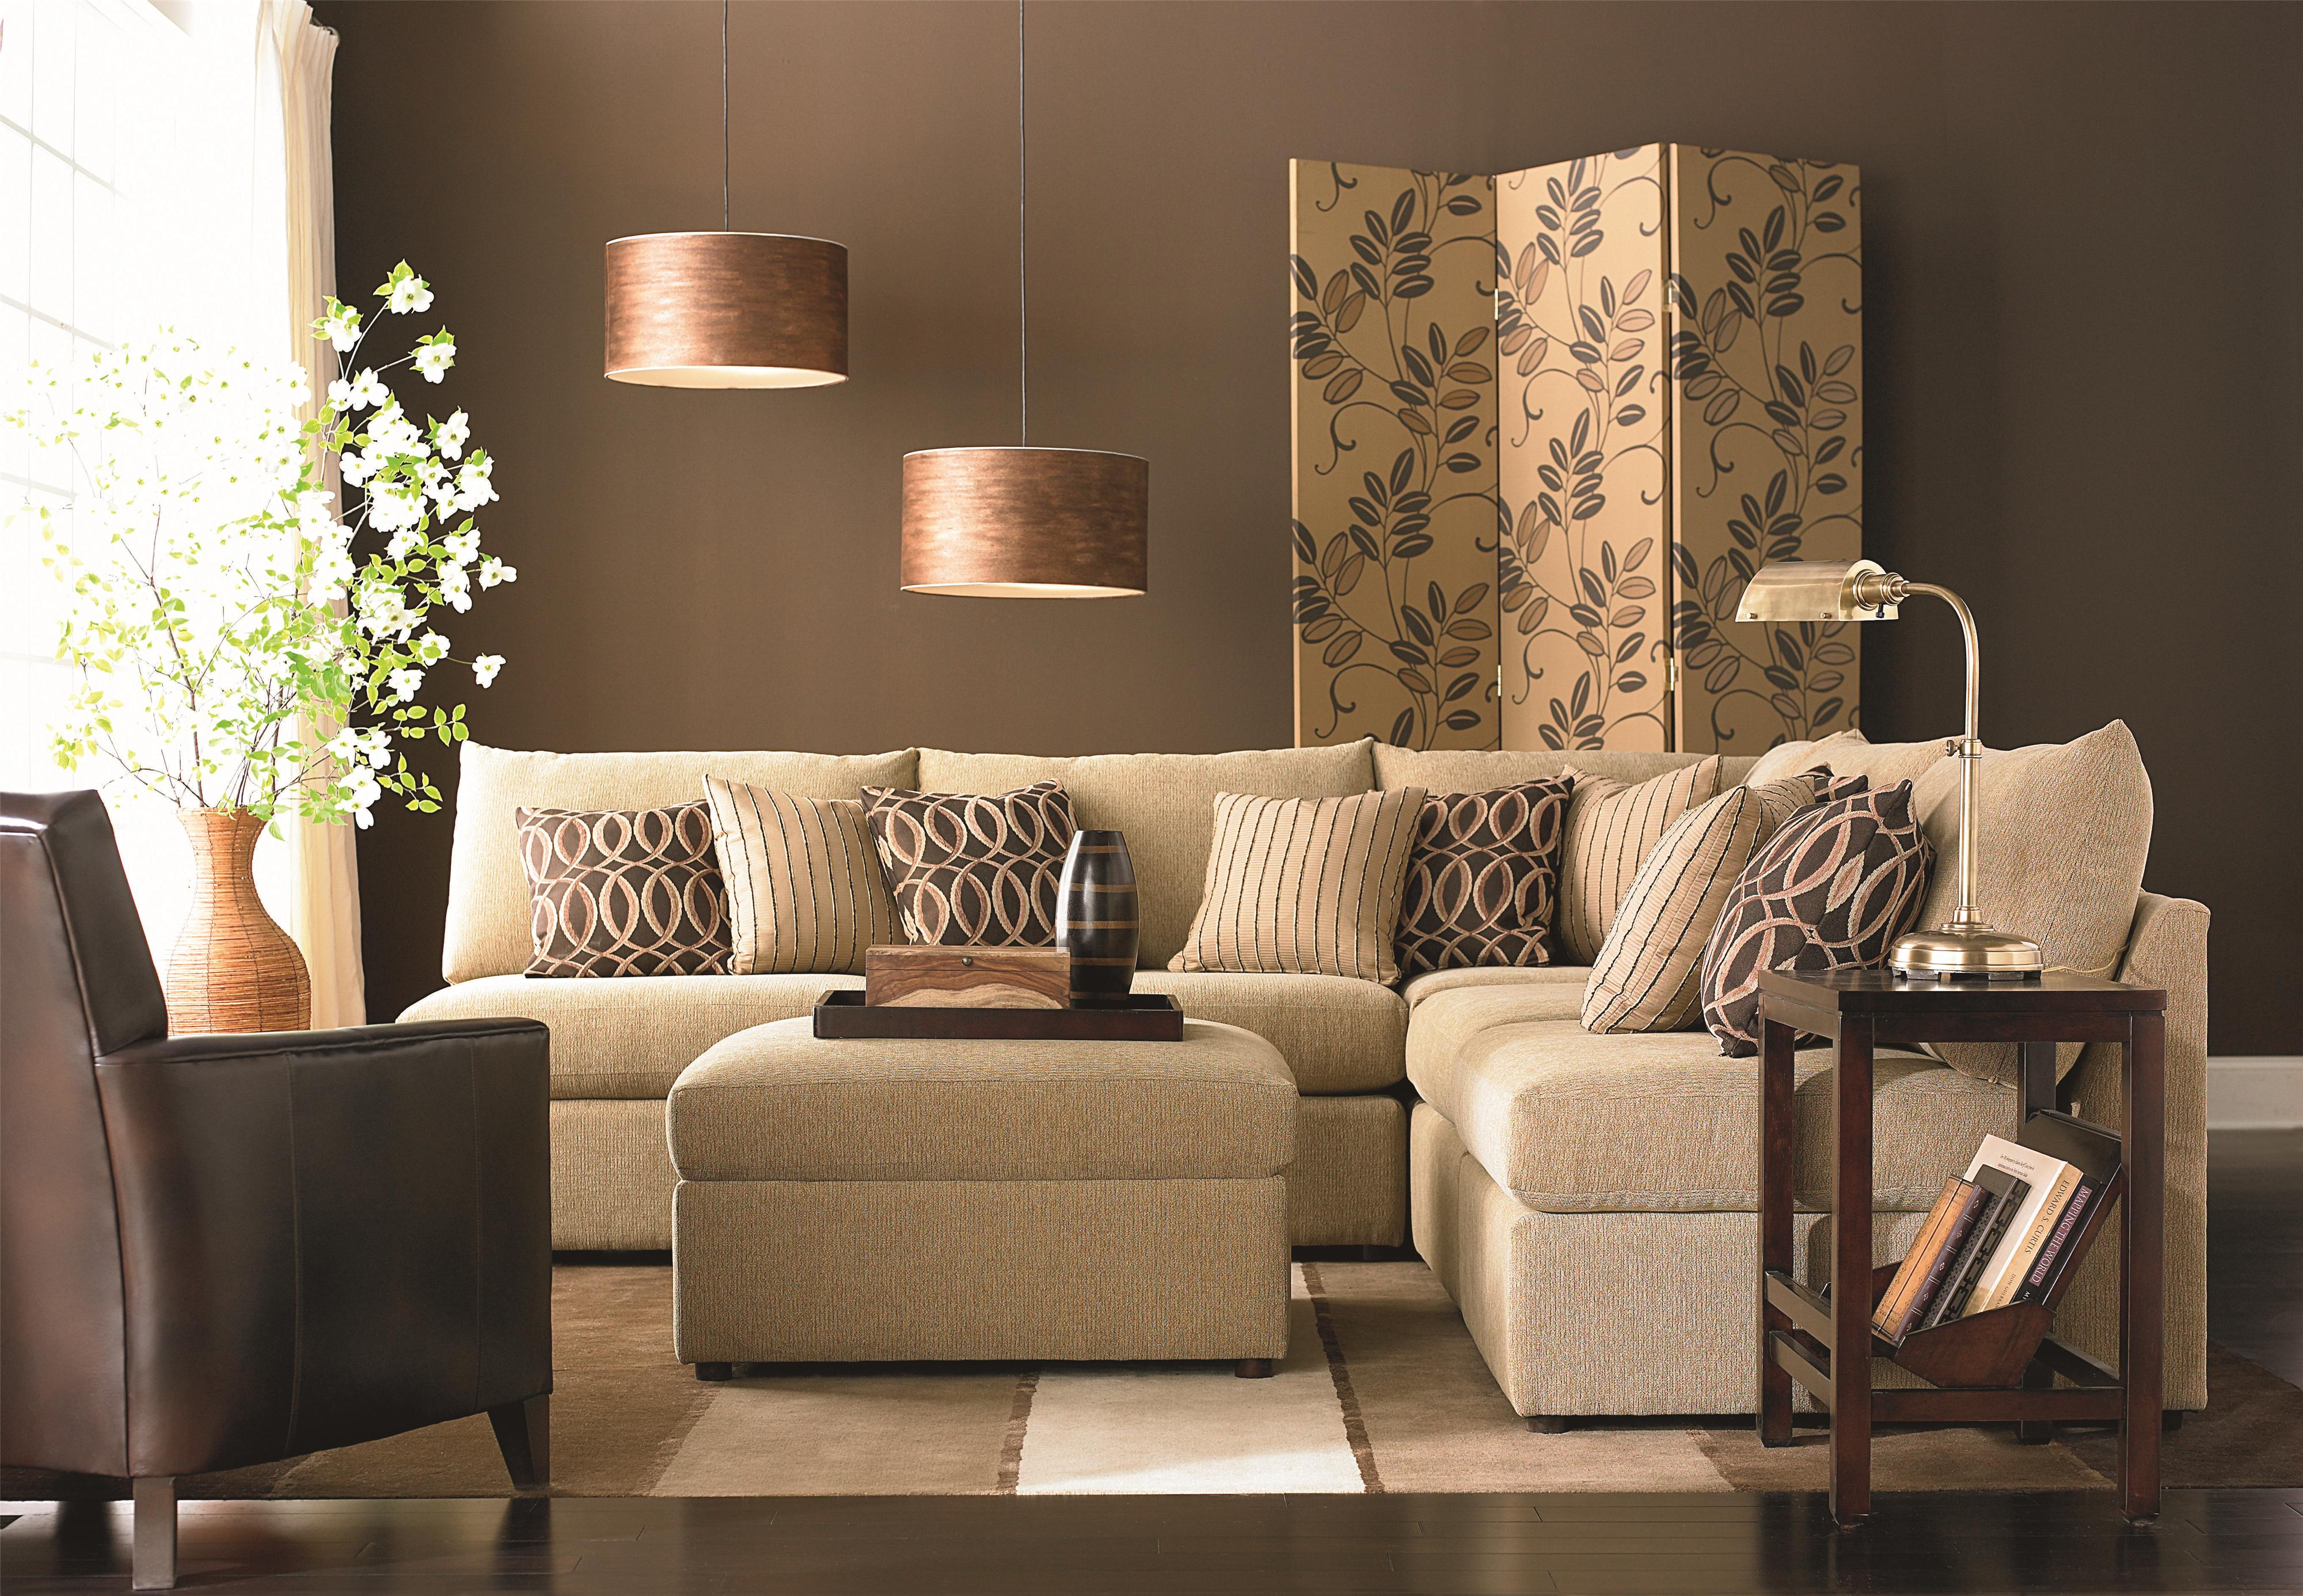 Bassett Beckham 3974 Transitional U Shaped Sectional With Loose Pillow Back  And Seat Cushions | DuBois Furniture | Sectional Sofas Waco, Temple,  Killeen, ...